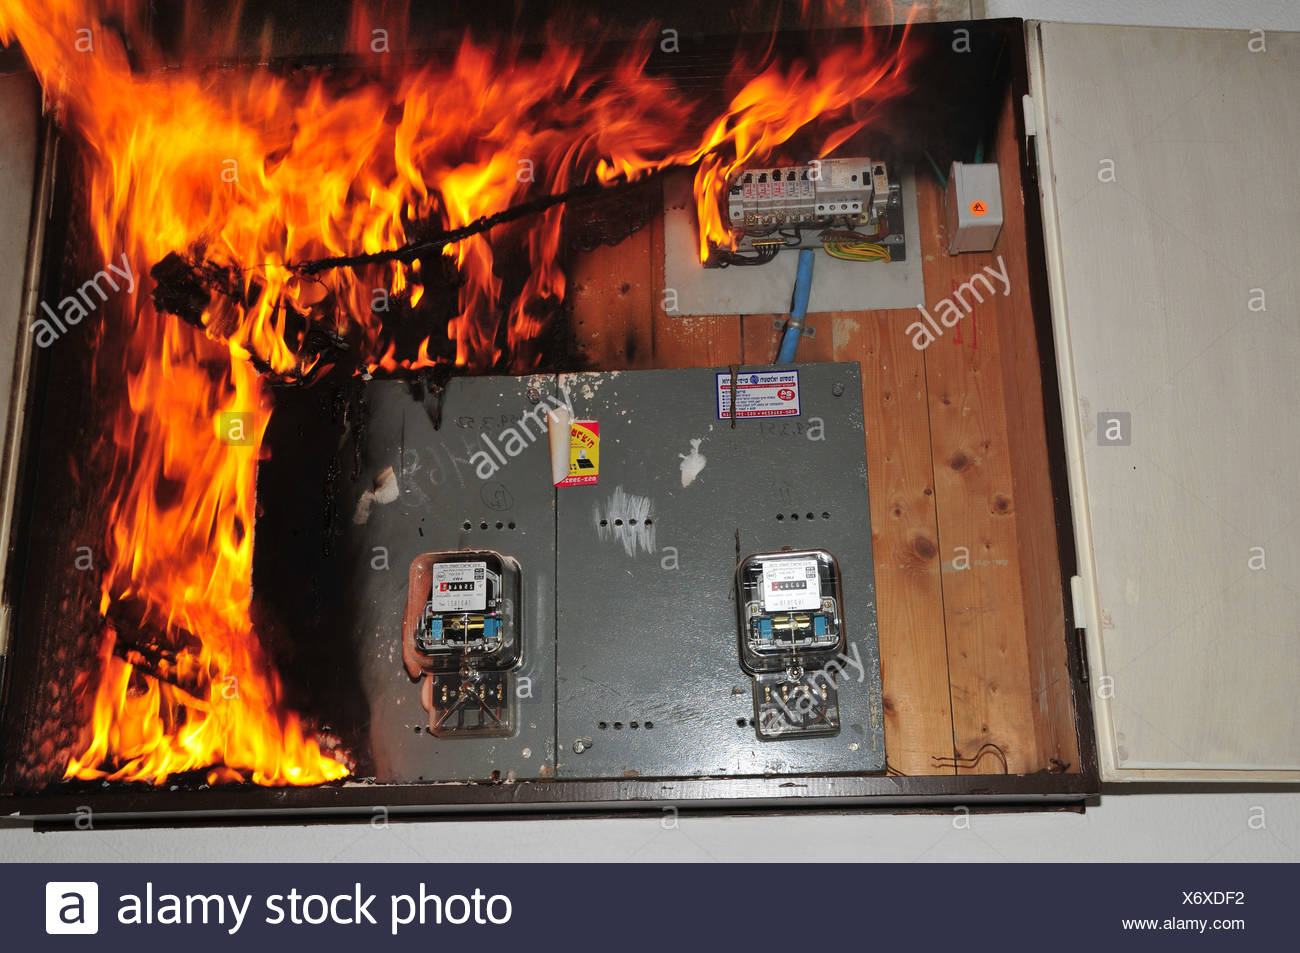 a fire broke out in a household electrical fuse box flames consumed the  board  photographed